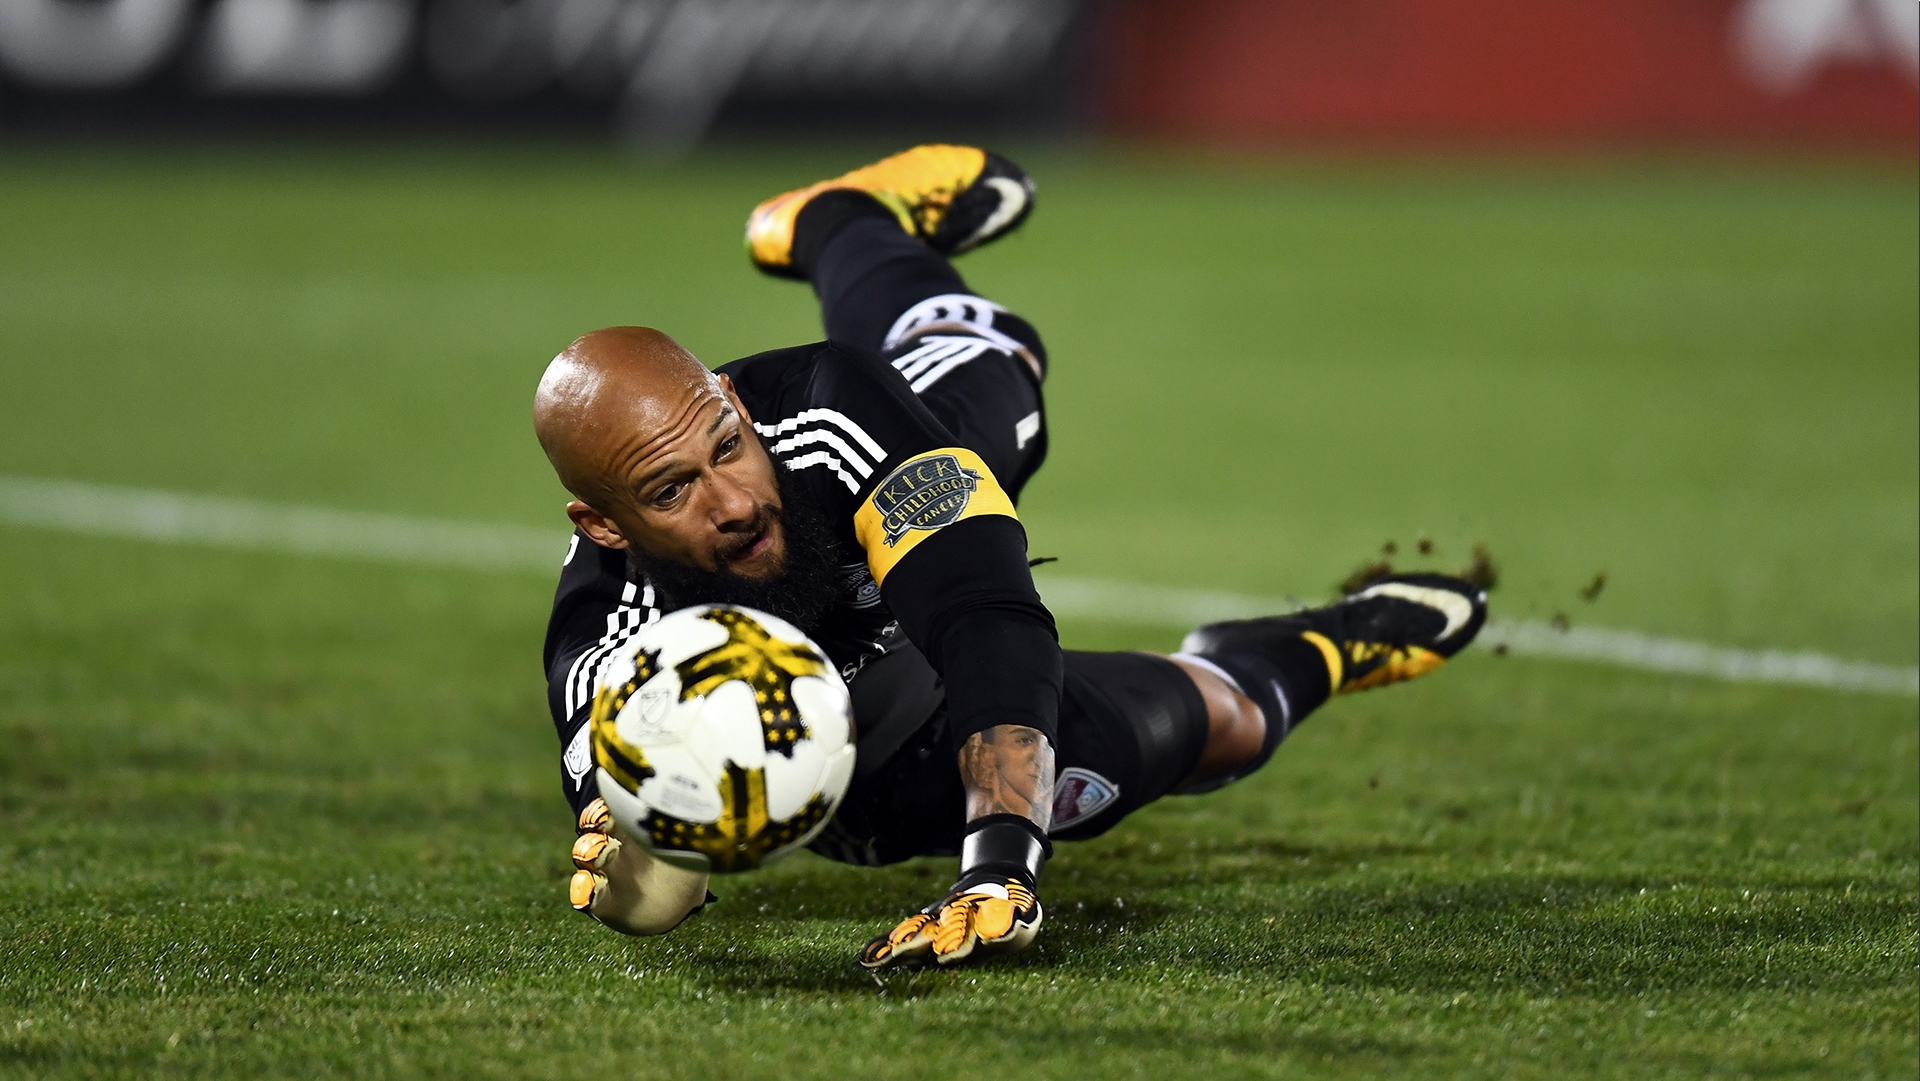 Statement on Tim Howard Disciplinary Decision